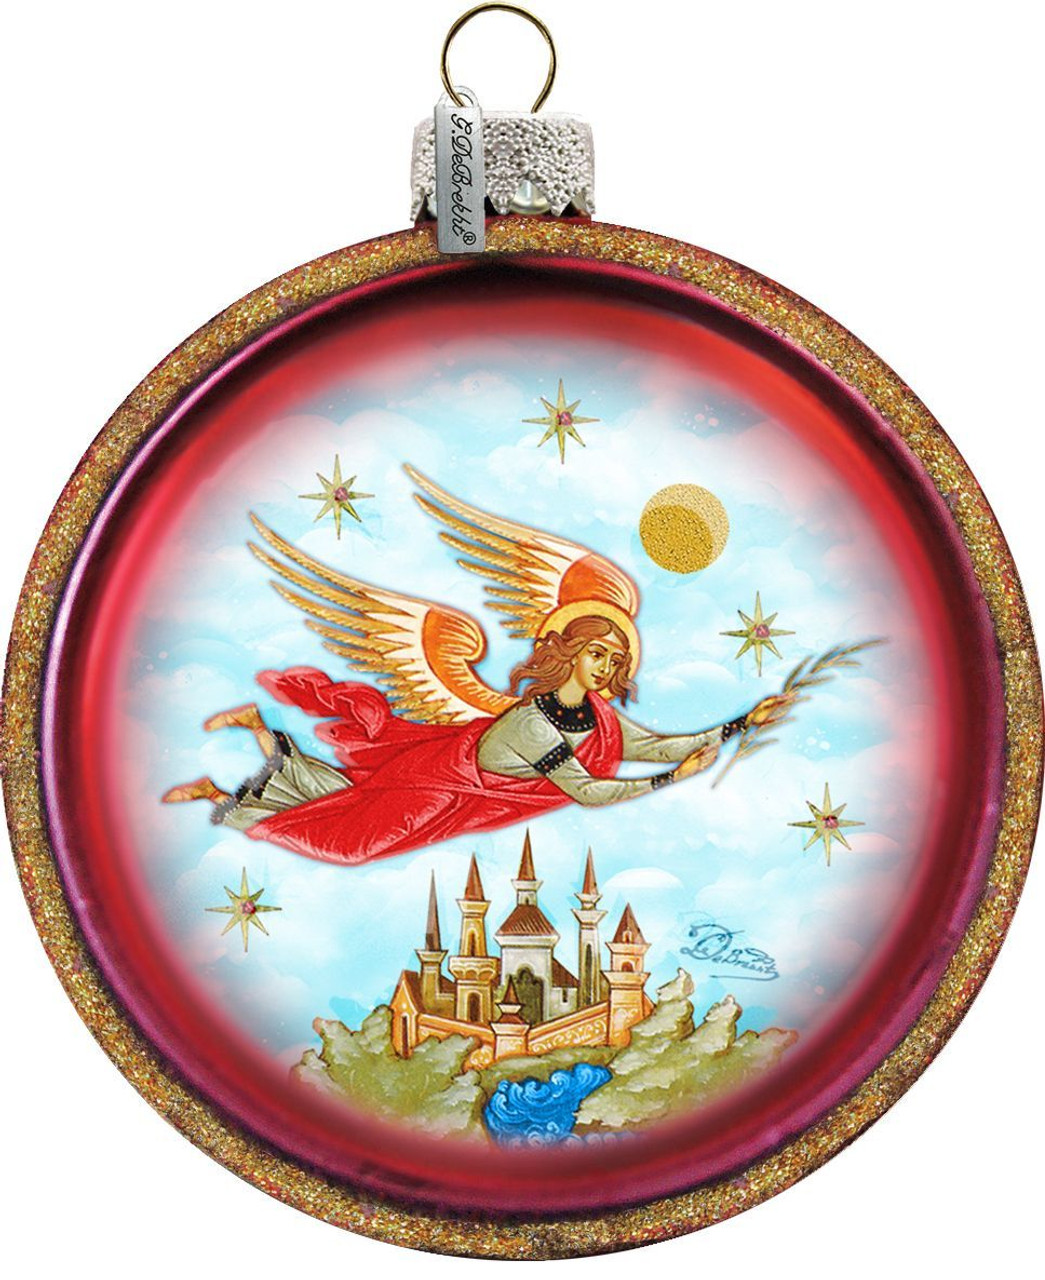 Flying Guardian Angel Christmas Ornament Round Glass Hand Painted 3 1 2 F C Ziegler Company